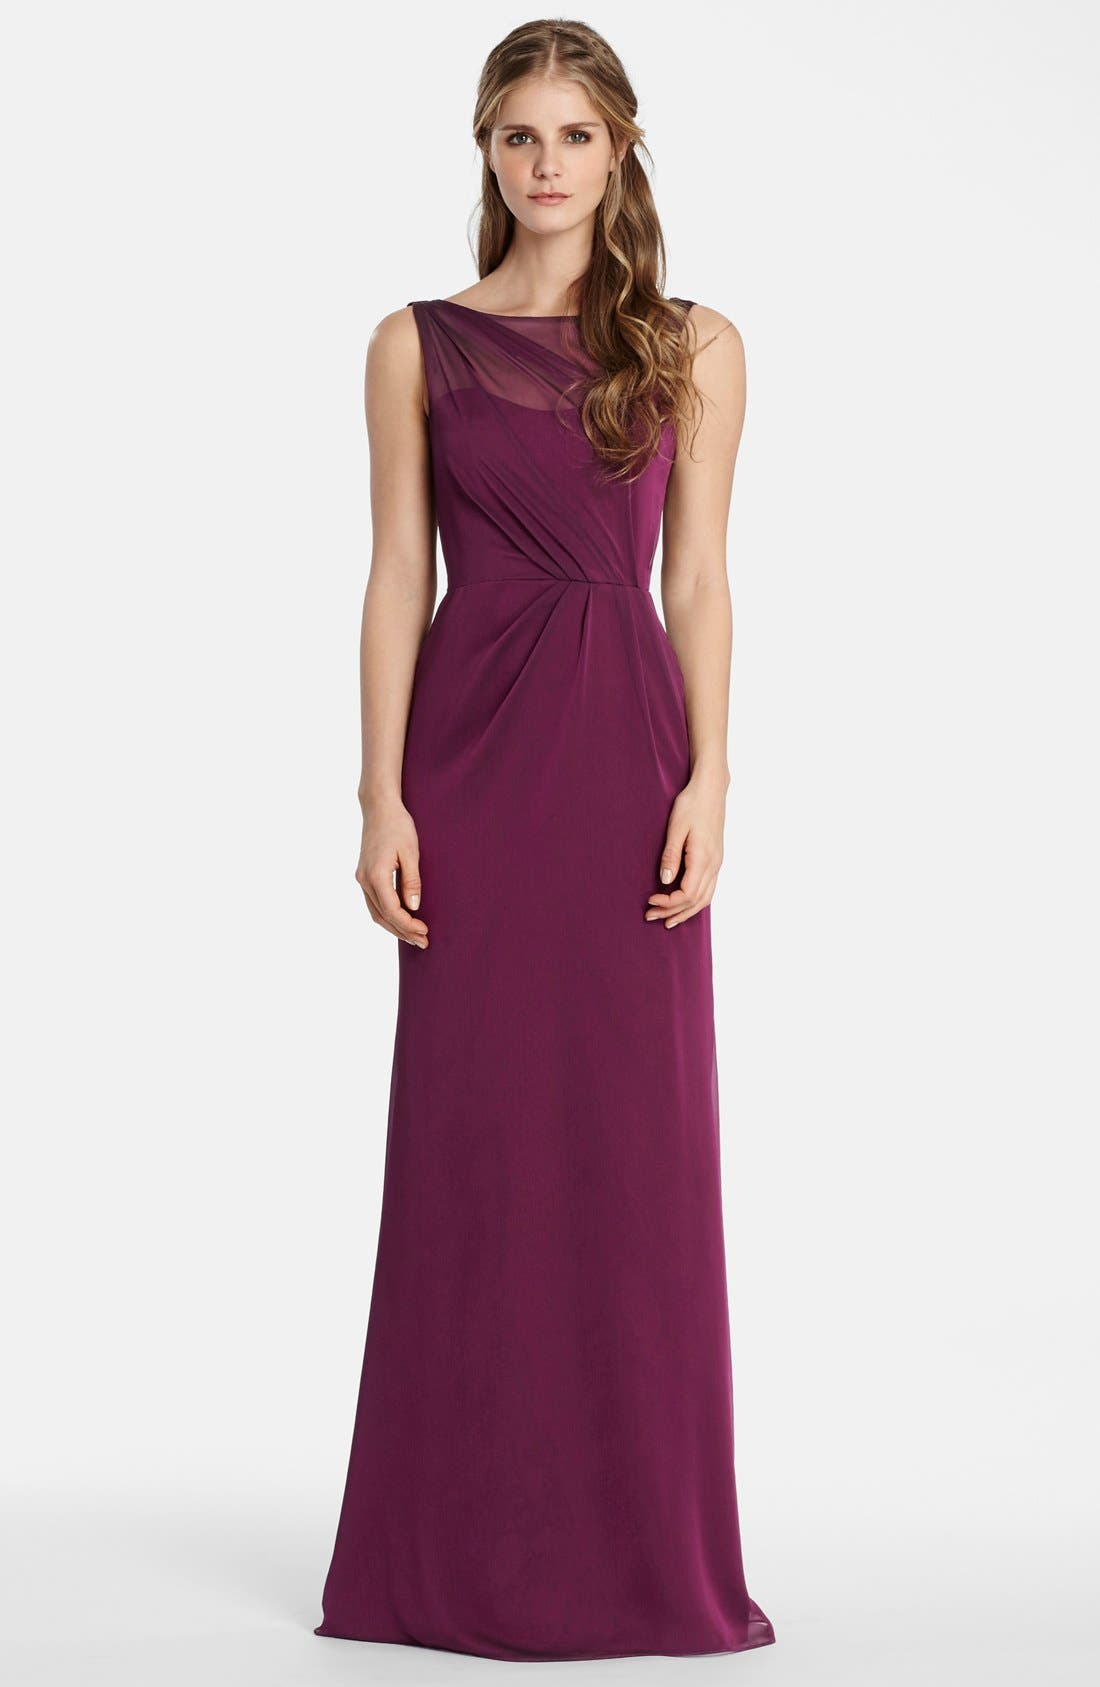 Jim Hjelm Occasions Drape Back Luminescent Chiffon A-Line Gown